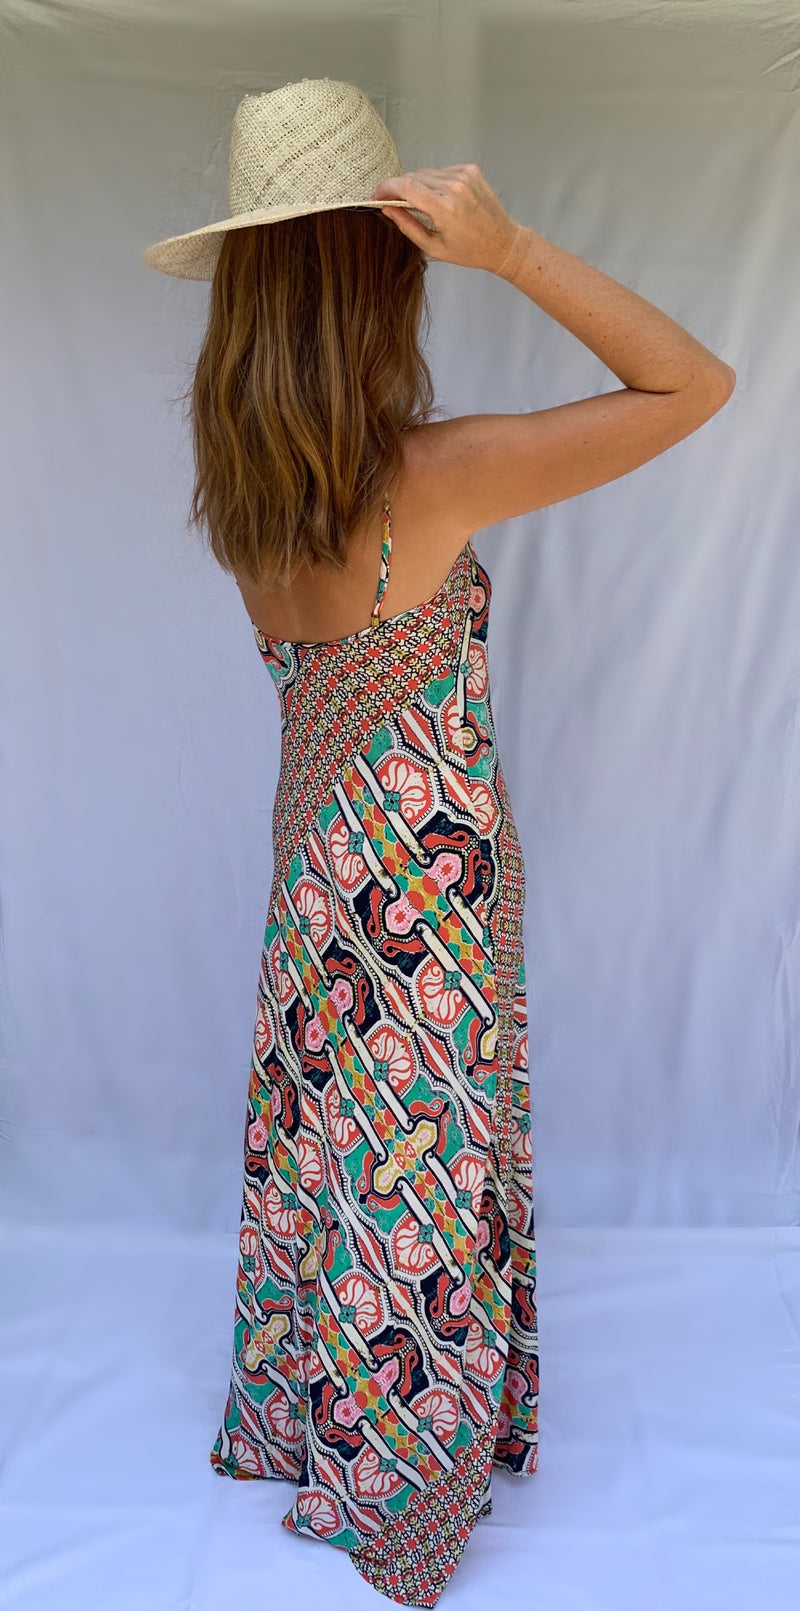 Deer Creek Dress in Palace